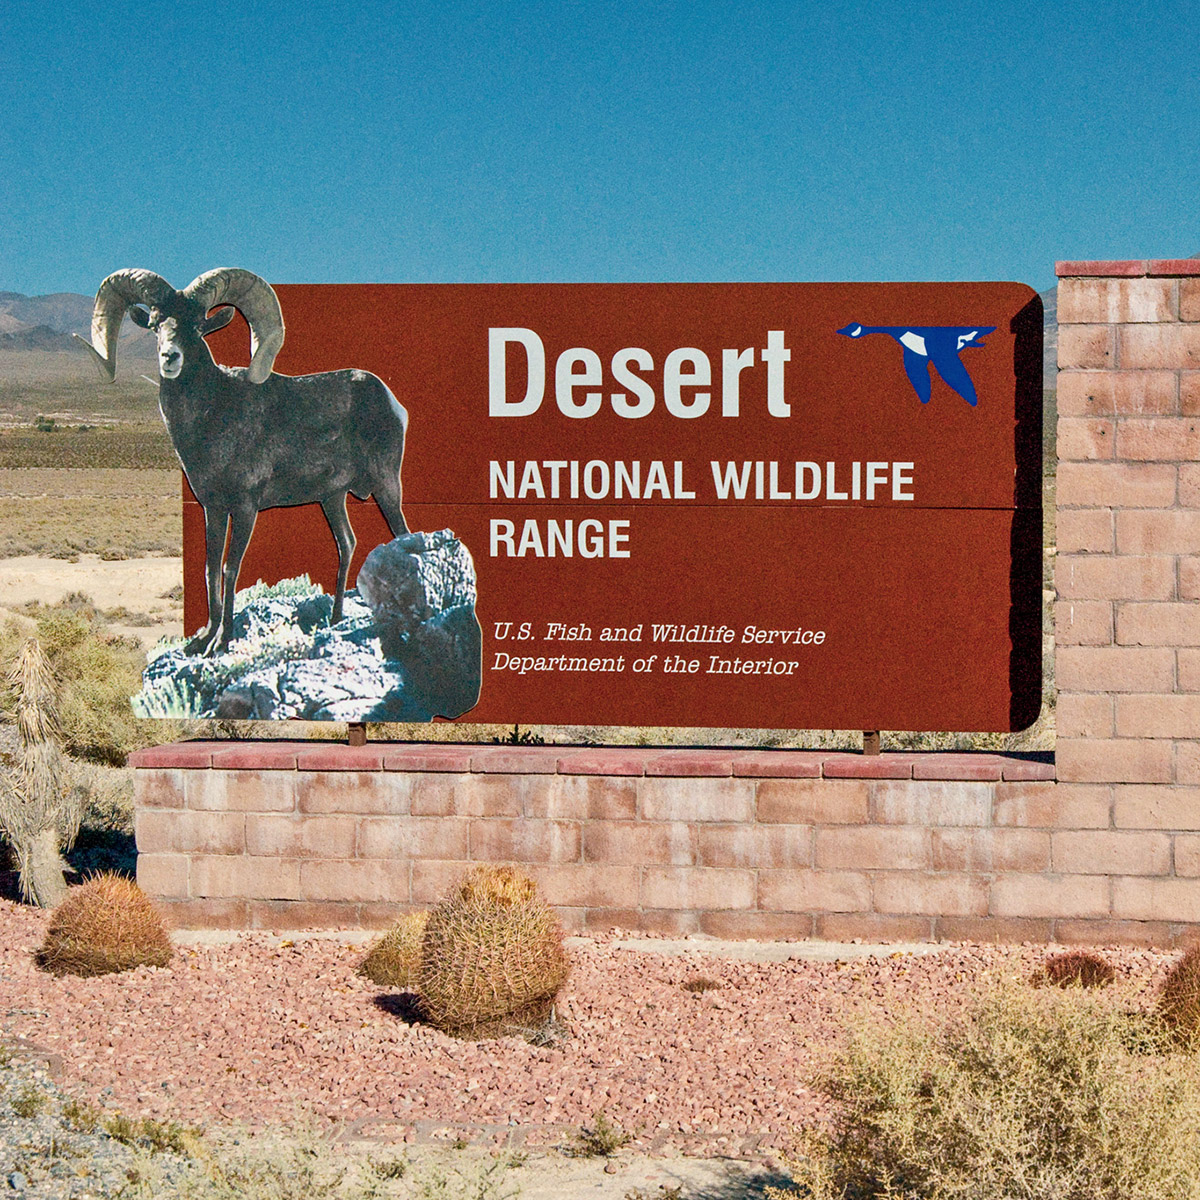 Wild Sheep Foundation Acknowledges 84th Anniversary of Nevada's Desert National Wildlife Refuge with Concerns